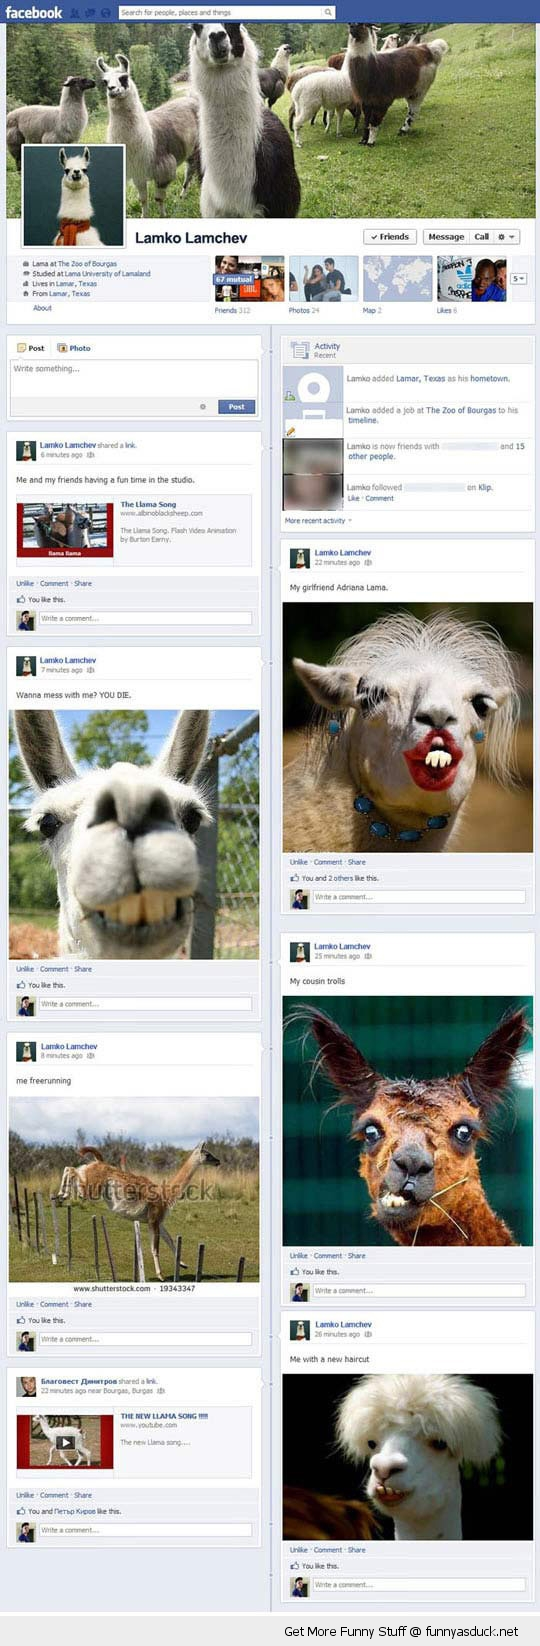 epic facebook frape llamas profile status funny pics pictures pic picture image photo images photos lol